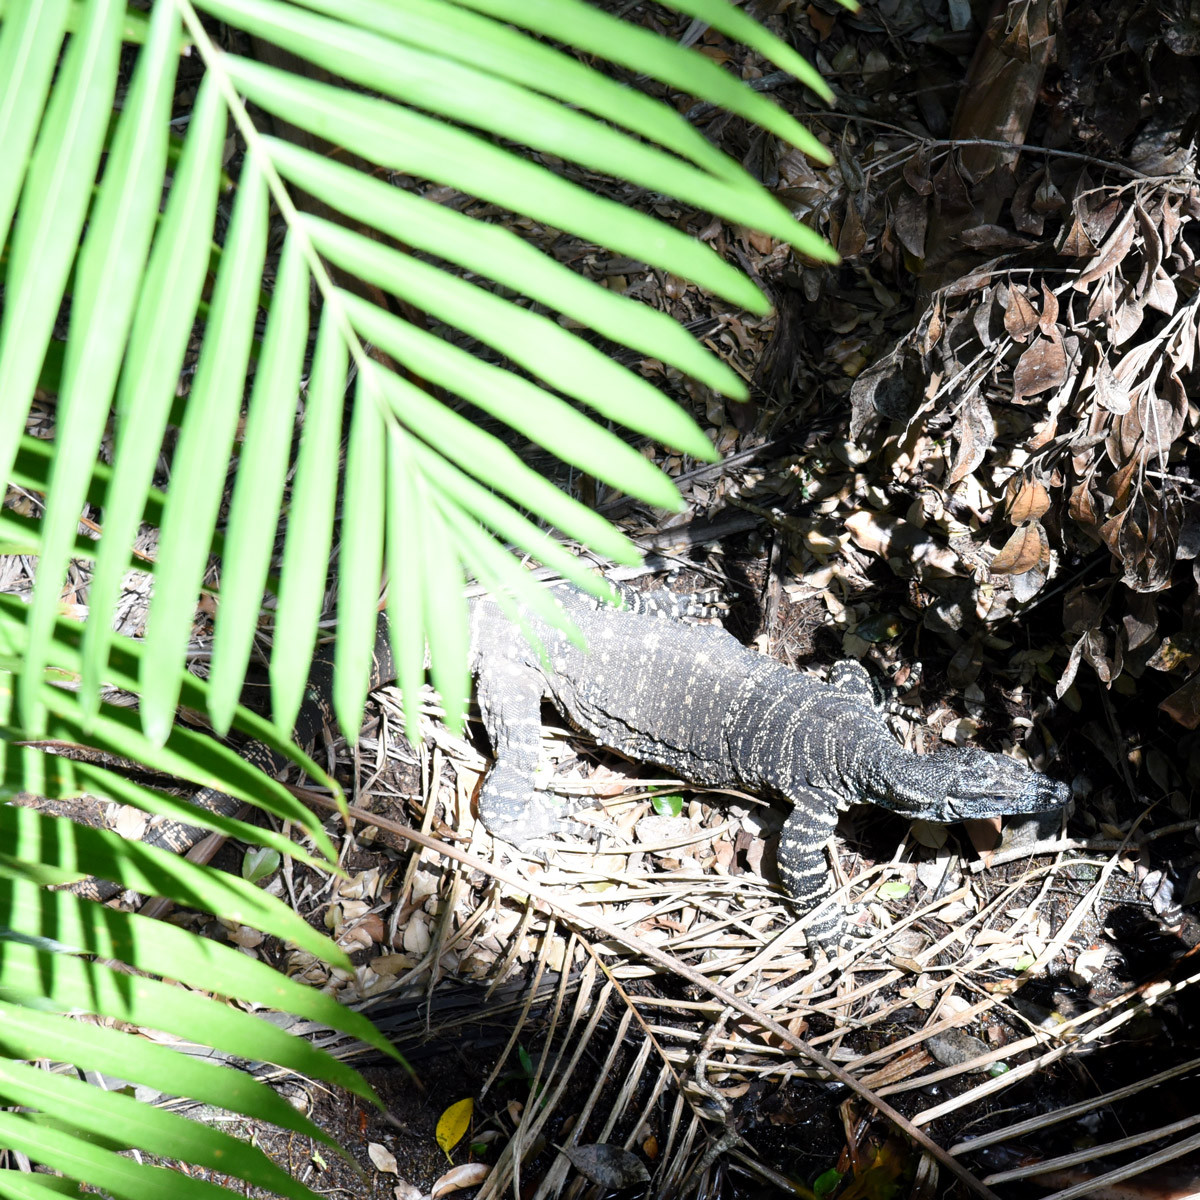 The magnificent Lace Monitor